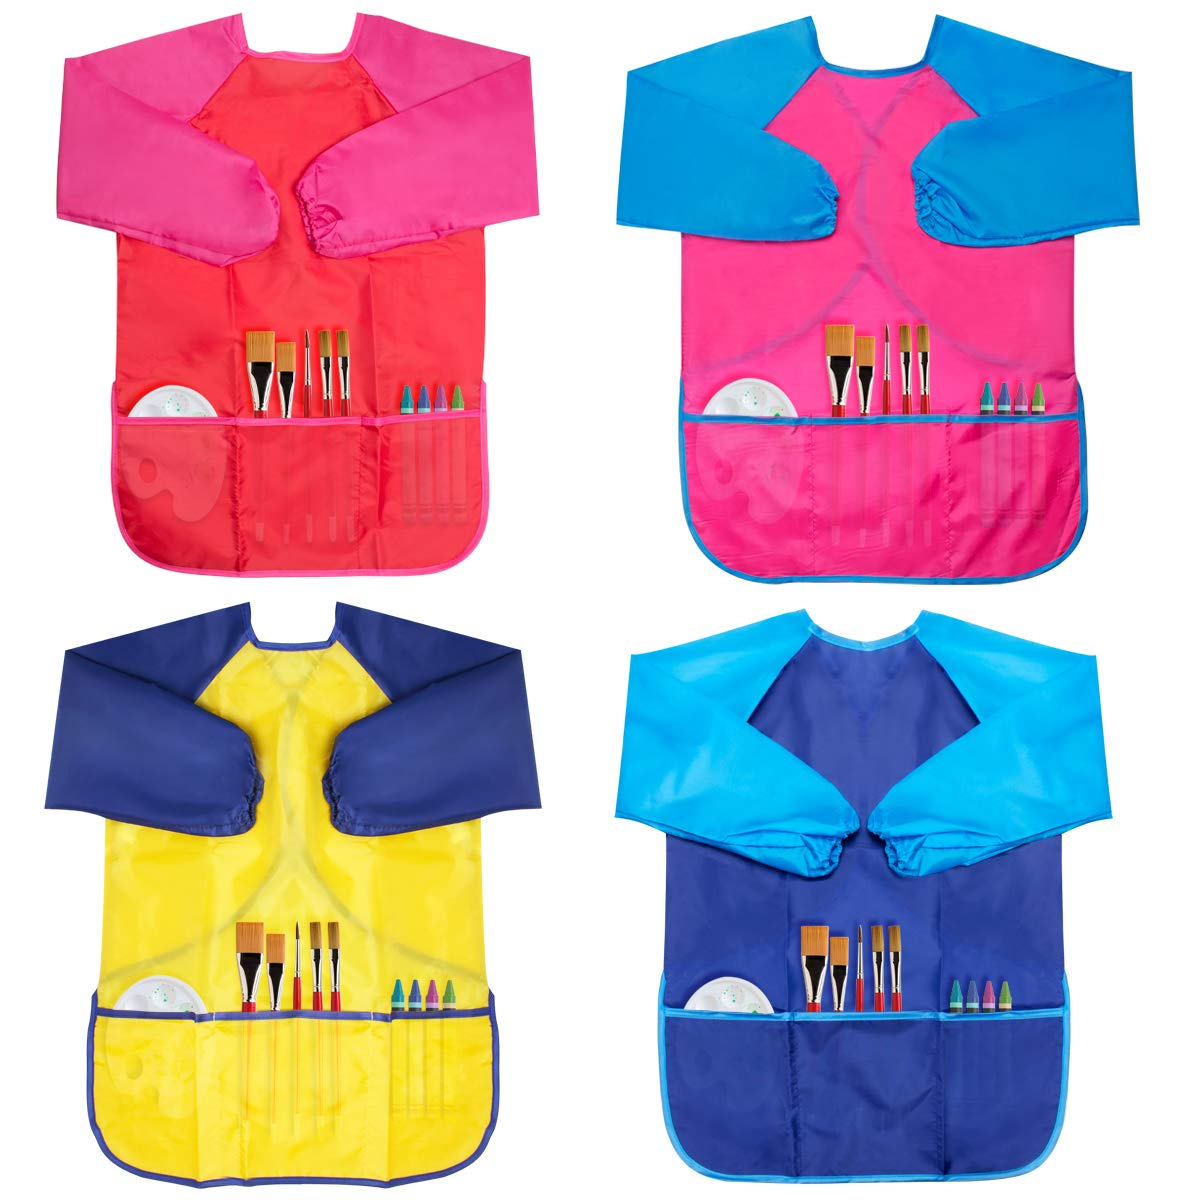 Chanaco 4 Pack Kids Art Smocks, Children Waterproof Artist Painting Aprons Long Sleeve with 3 Pockets for Age 2-6 Years, 2 Colors (4 Pack (4 Colors))